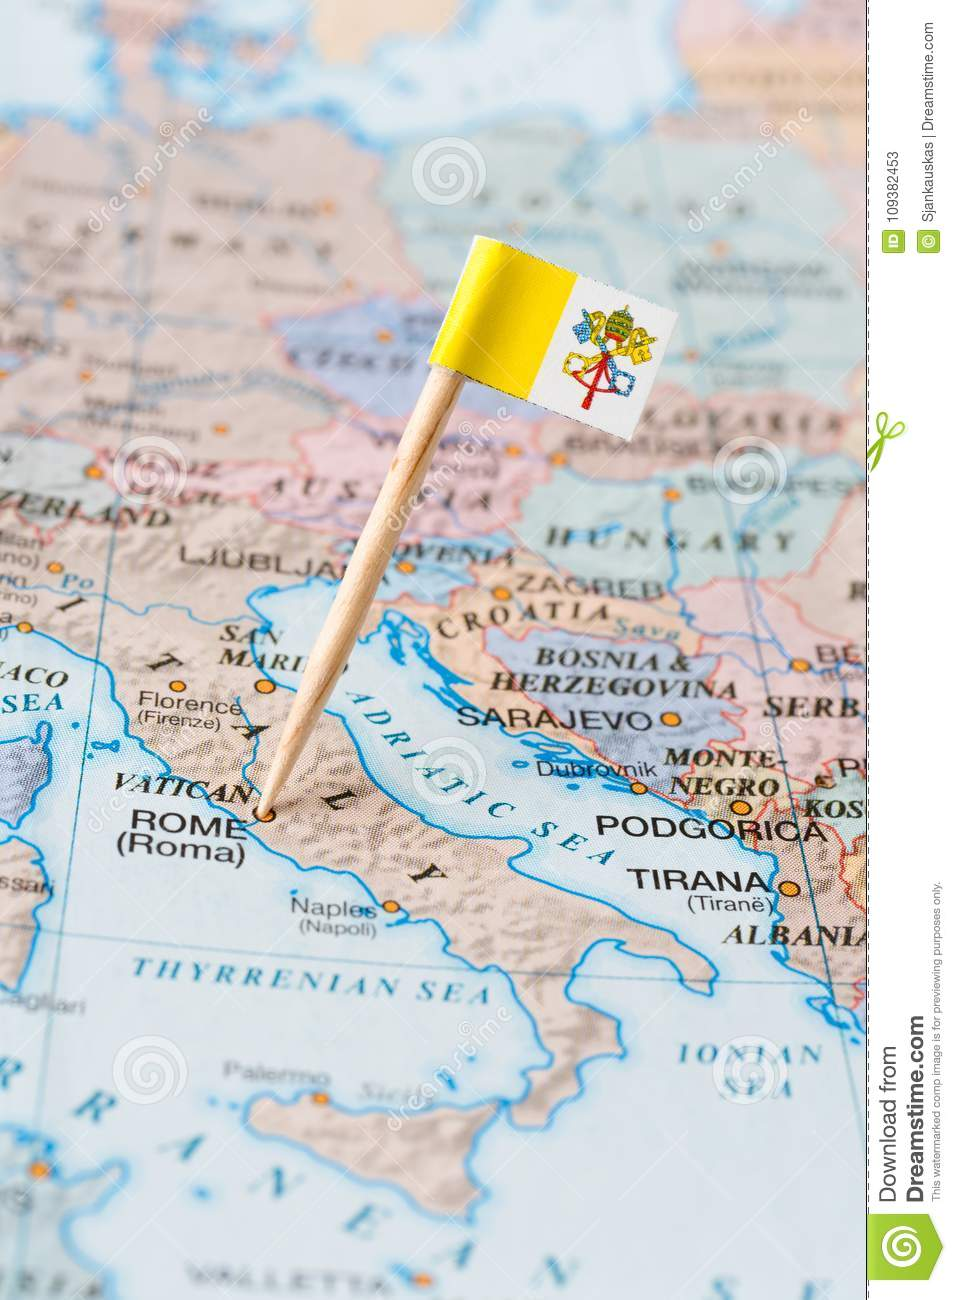 Vatican City Flag Pin On A Country Map Stock Image - Image of ...